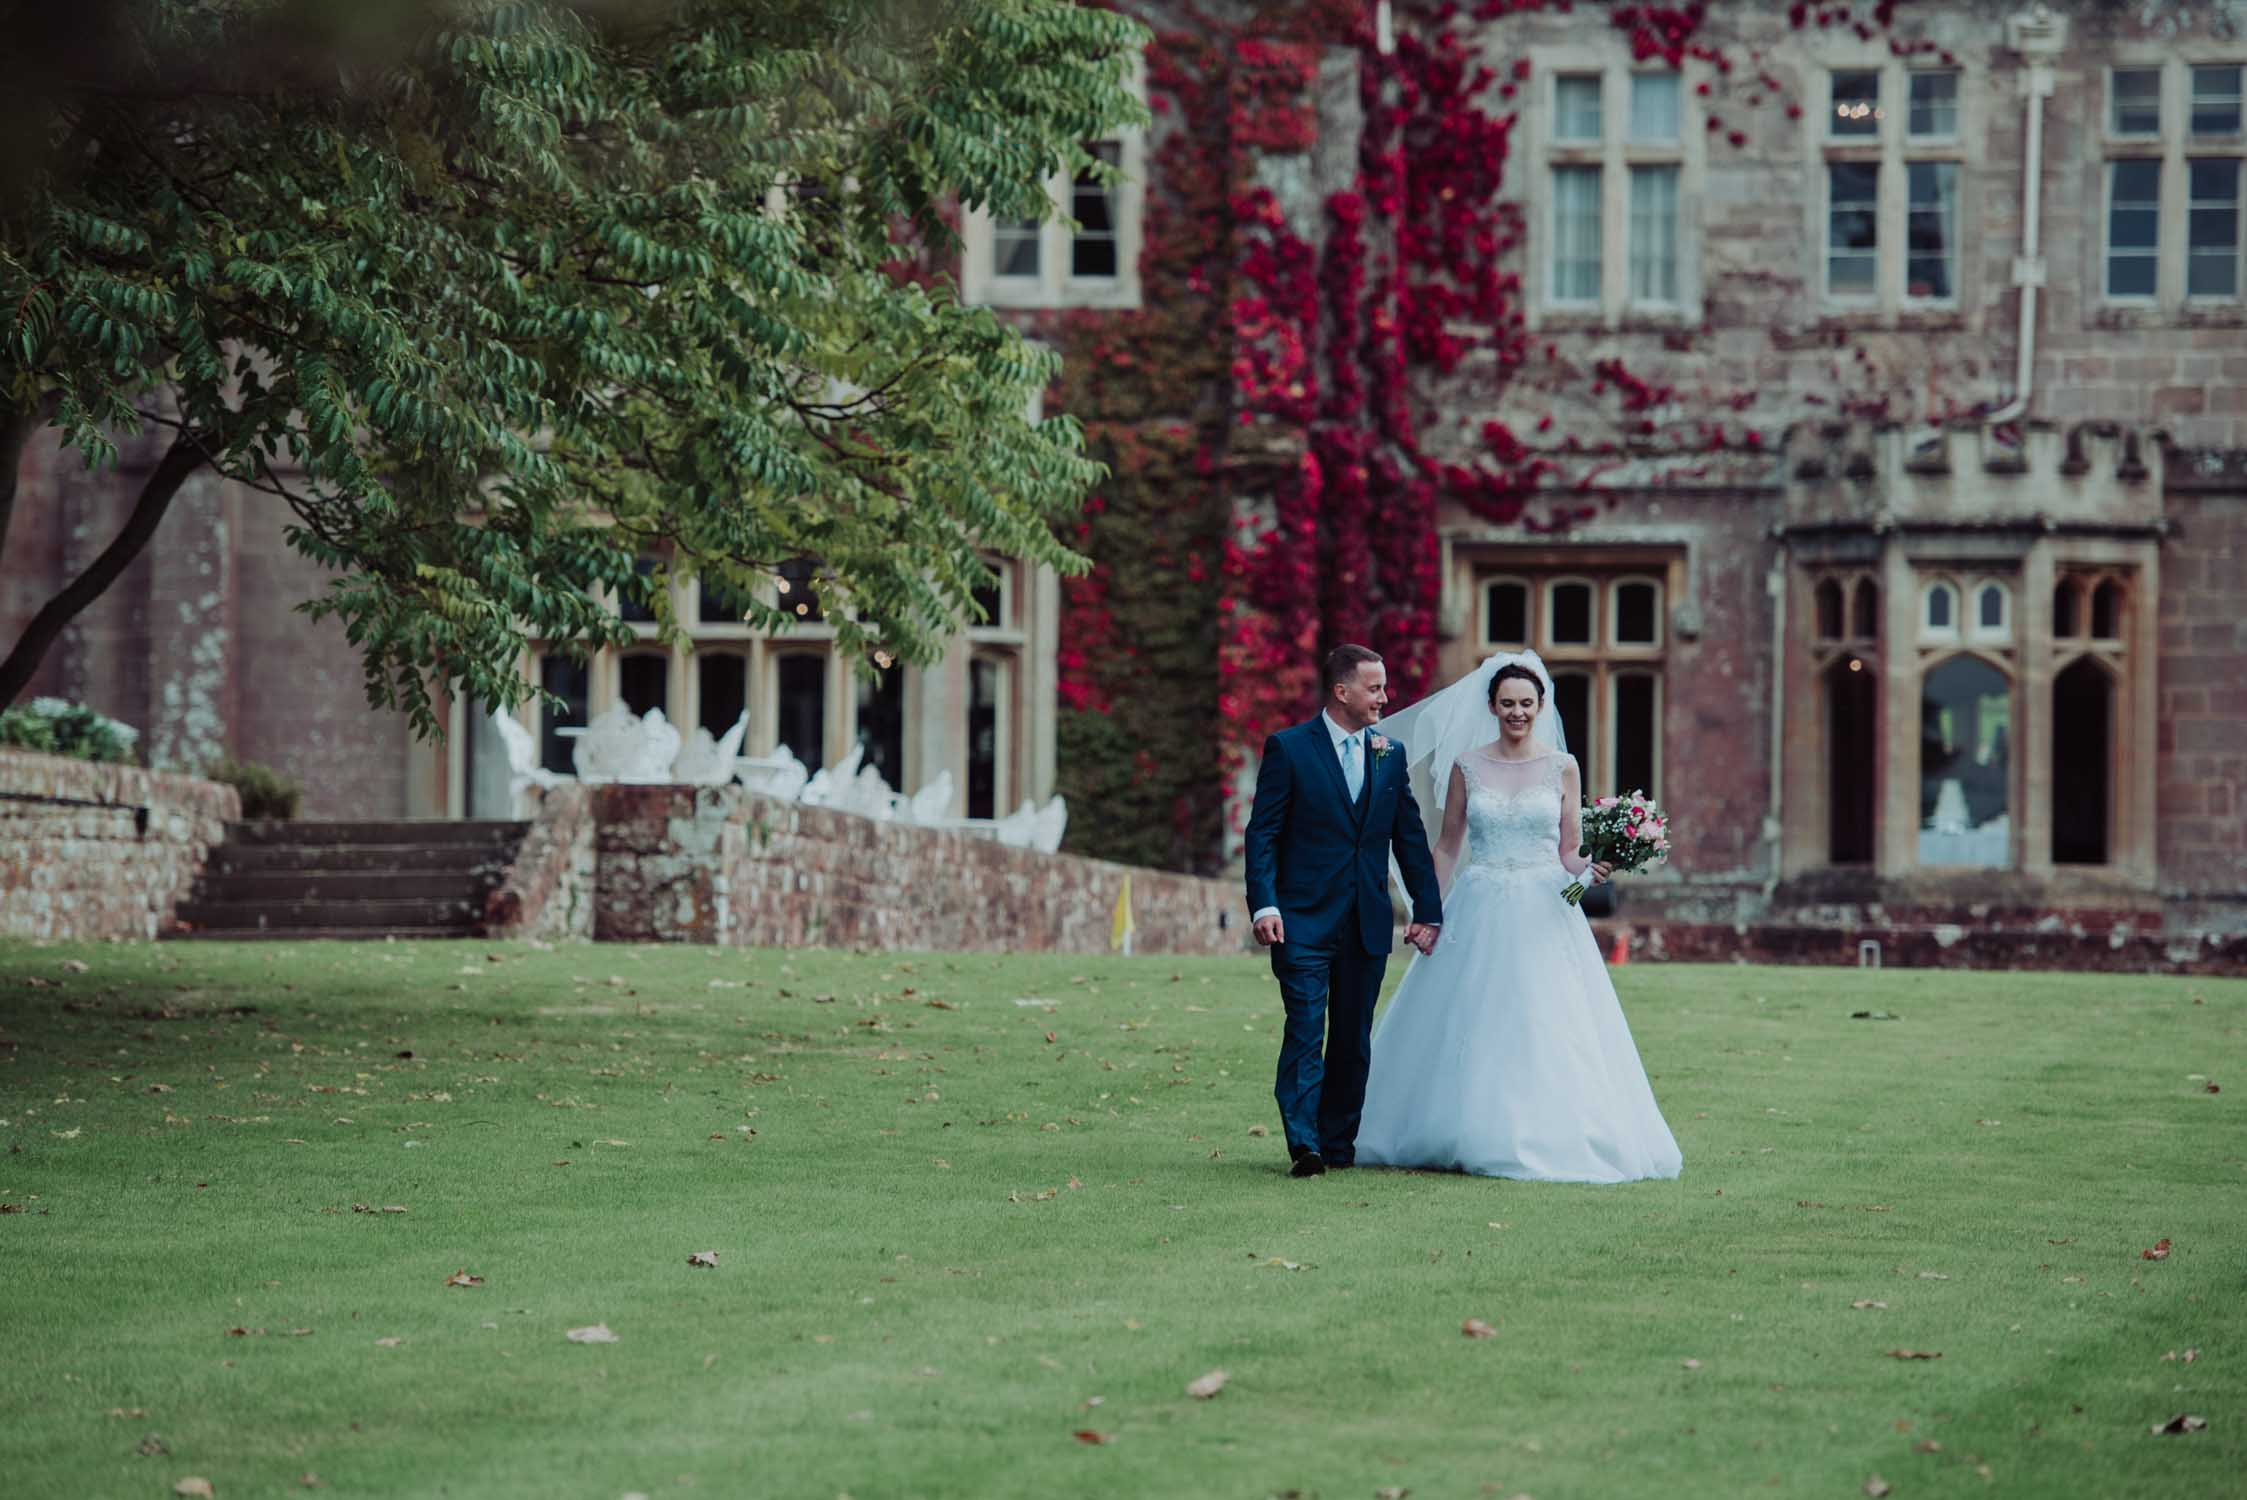 Somerset wedding photographer capturing intimate bride & groom shots at Somerset wedding at St Audries Park in Somerset